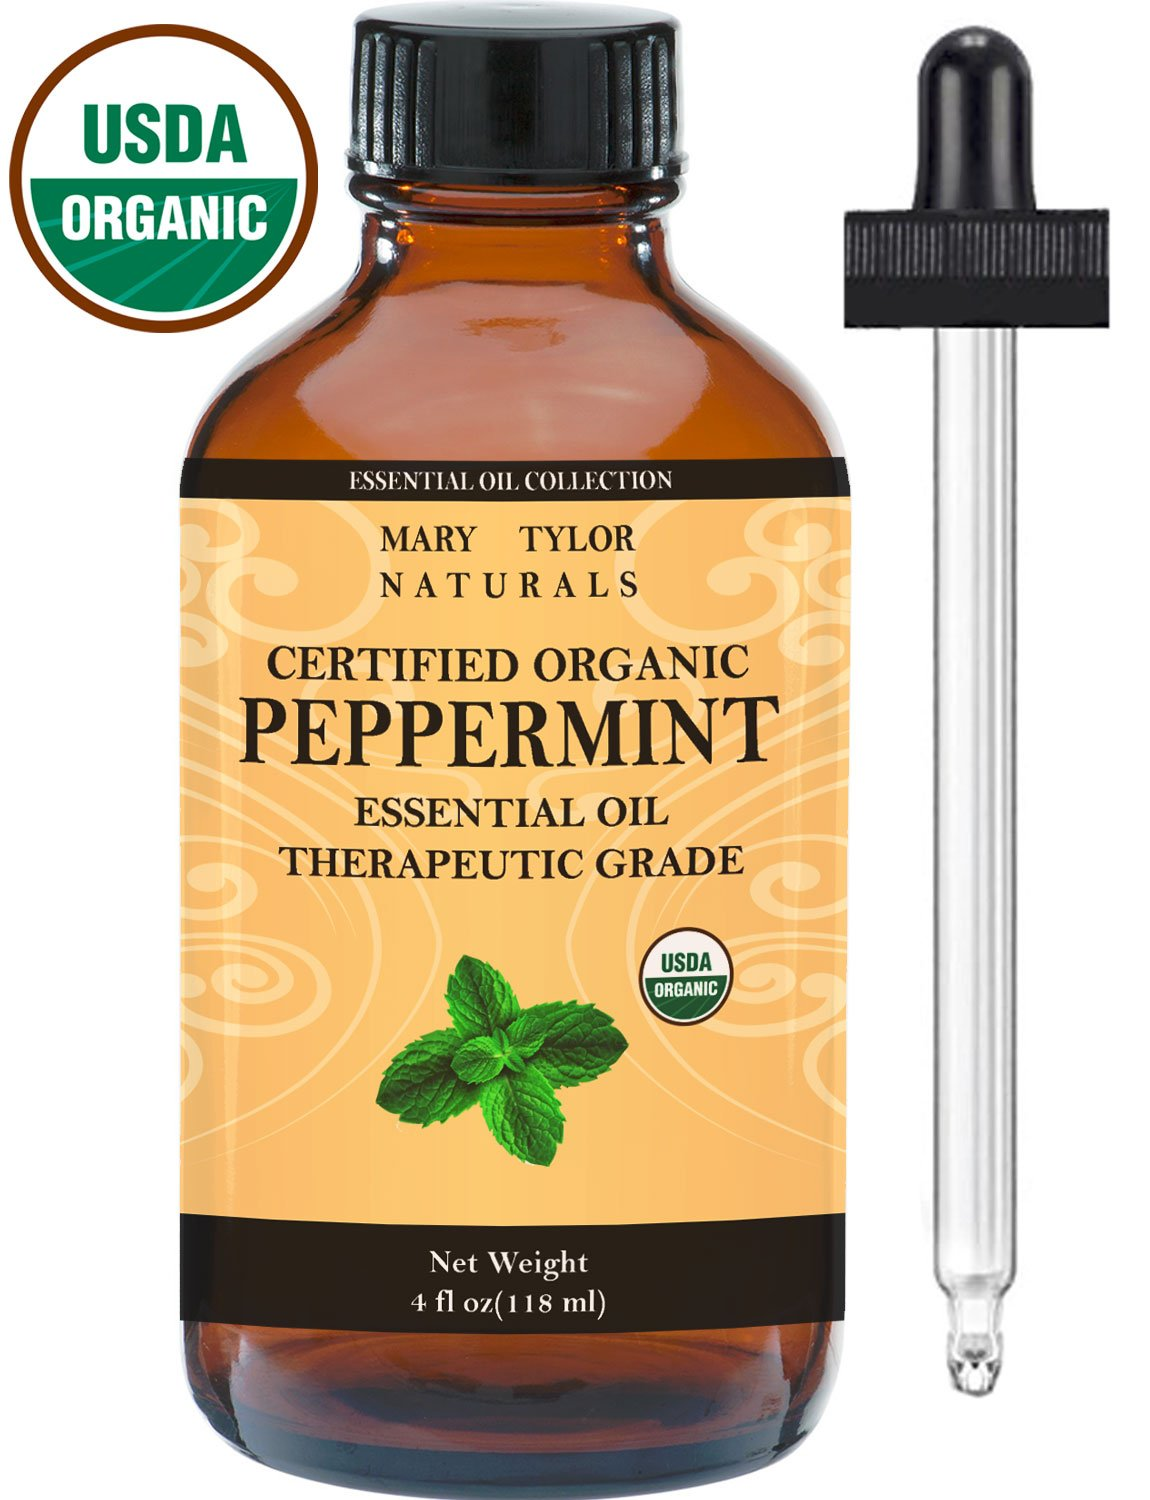 Organic Peppermint Essential Oil Large 4 oz, USDA Certified Organic, By Mary Tylor Naturals Premium Therapeutic Grade, 100% Pure, Perfect for Aromatherapy, Relaxation, Improved Mood, Repel Mice, Pests